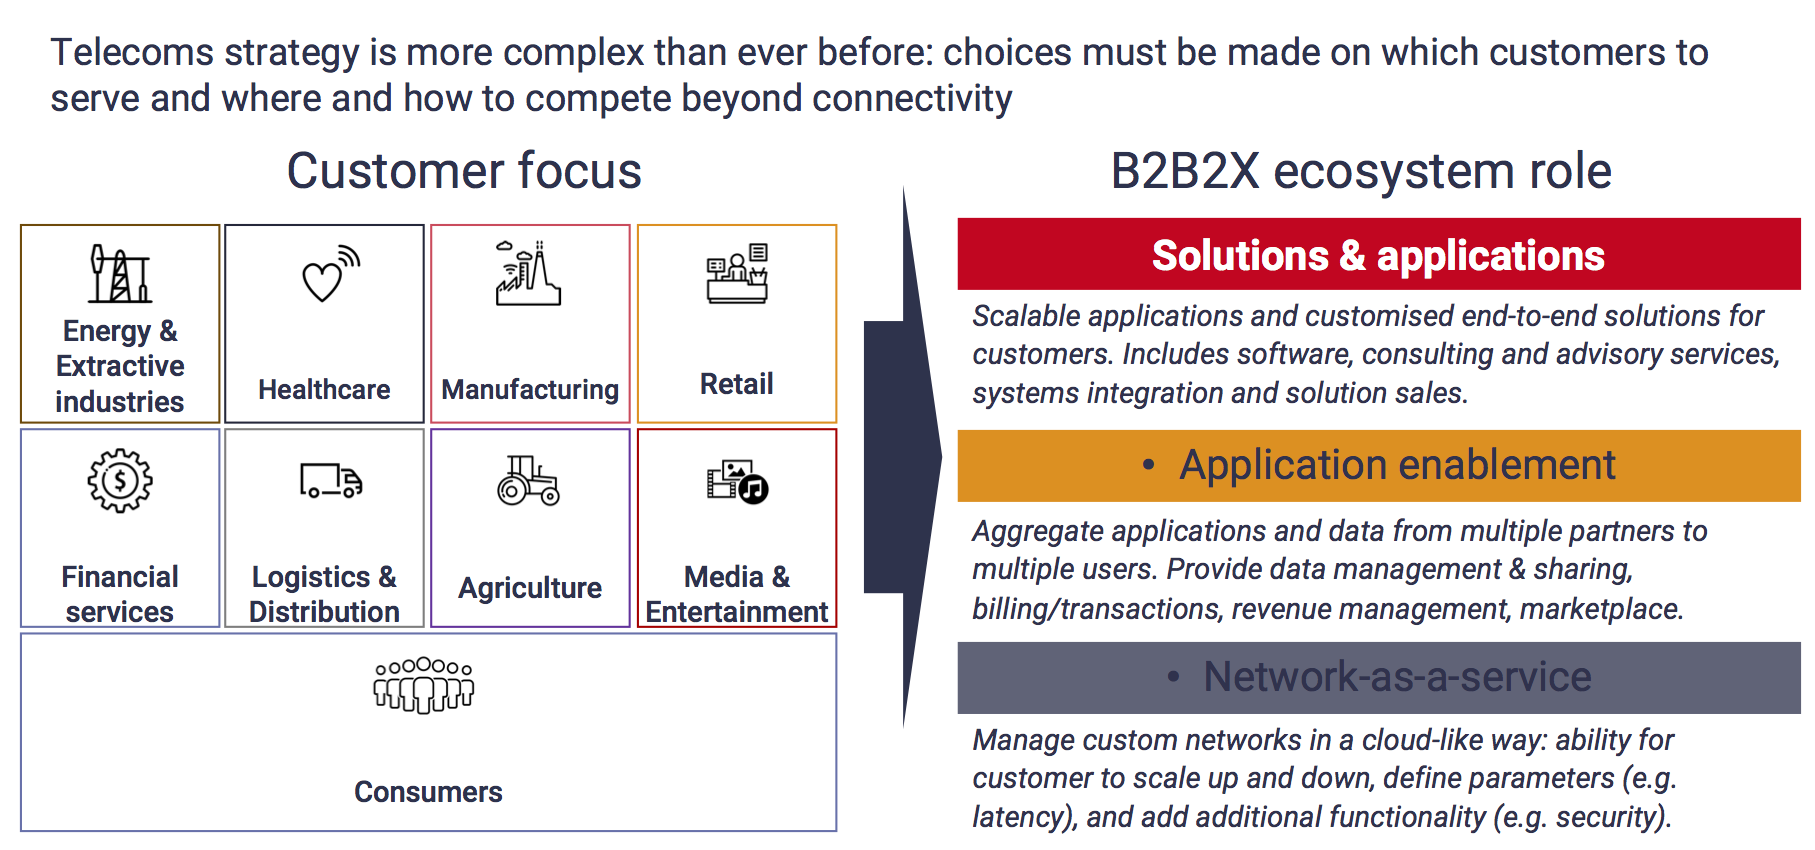 Telco strategy is more complex